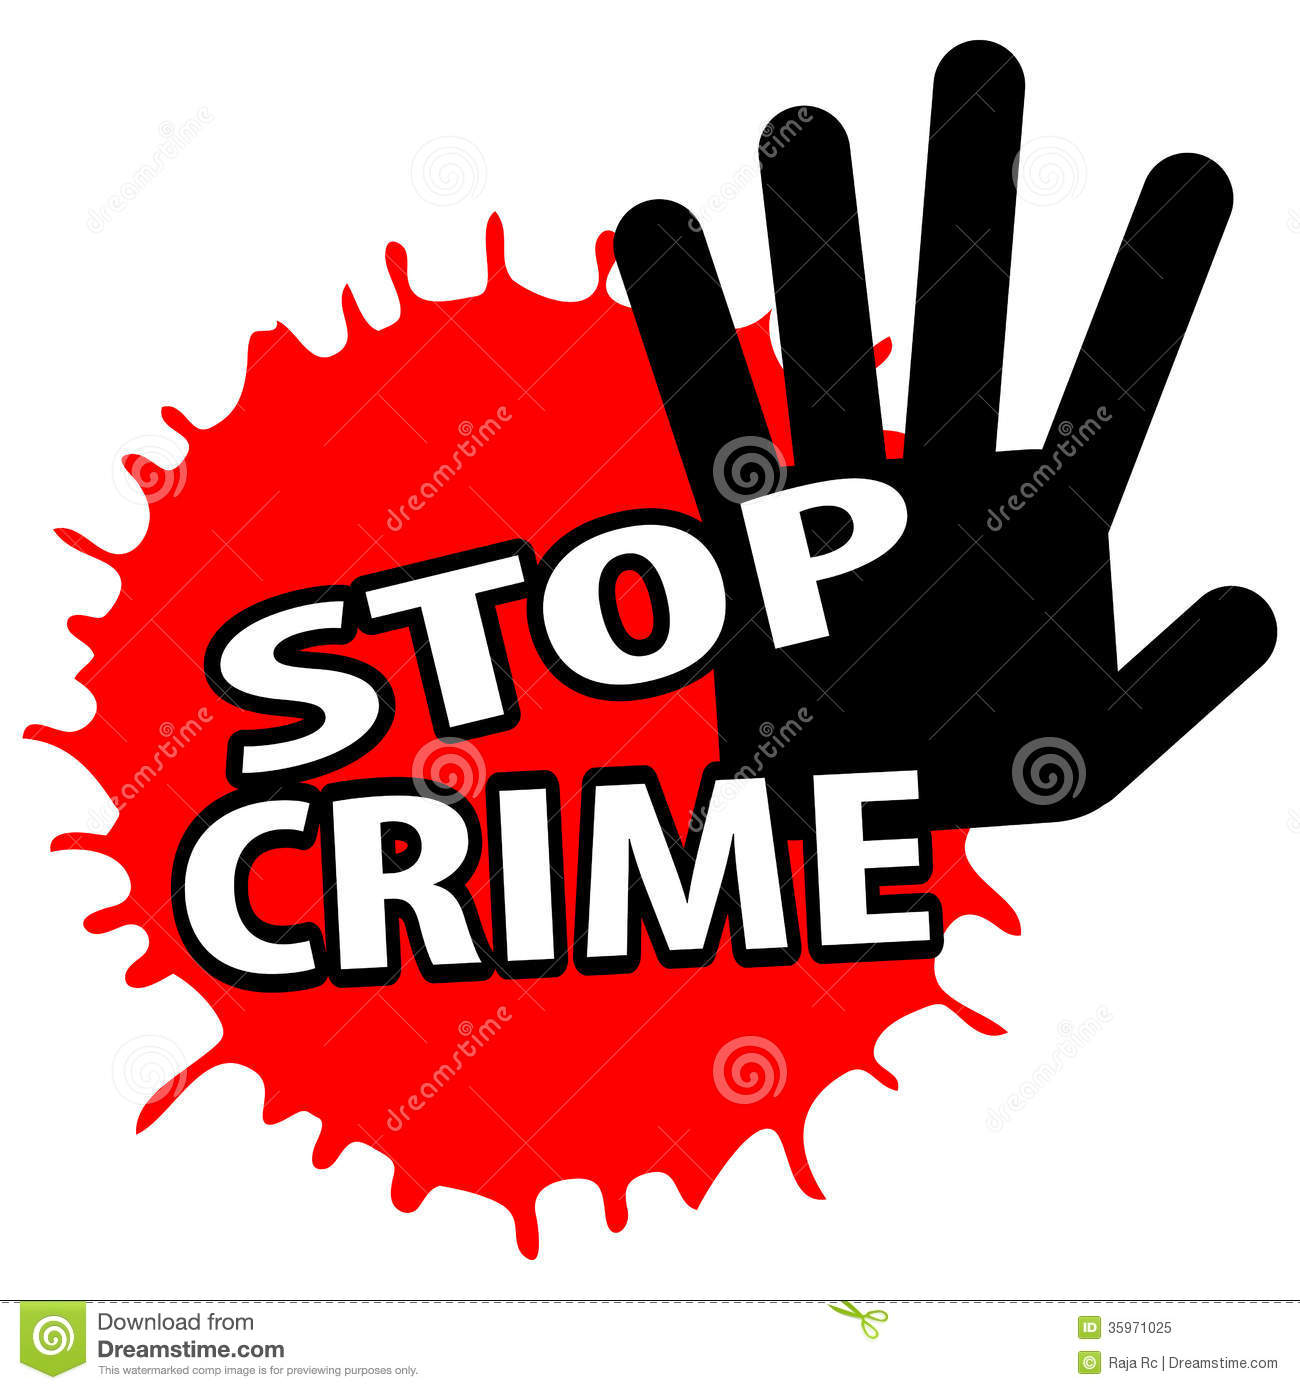 Stop Crime Royalty Free Stock Photo   Image  35971025